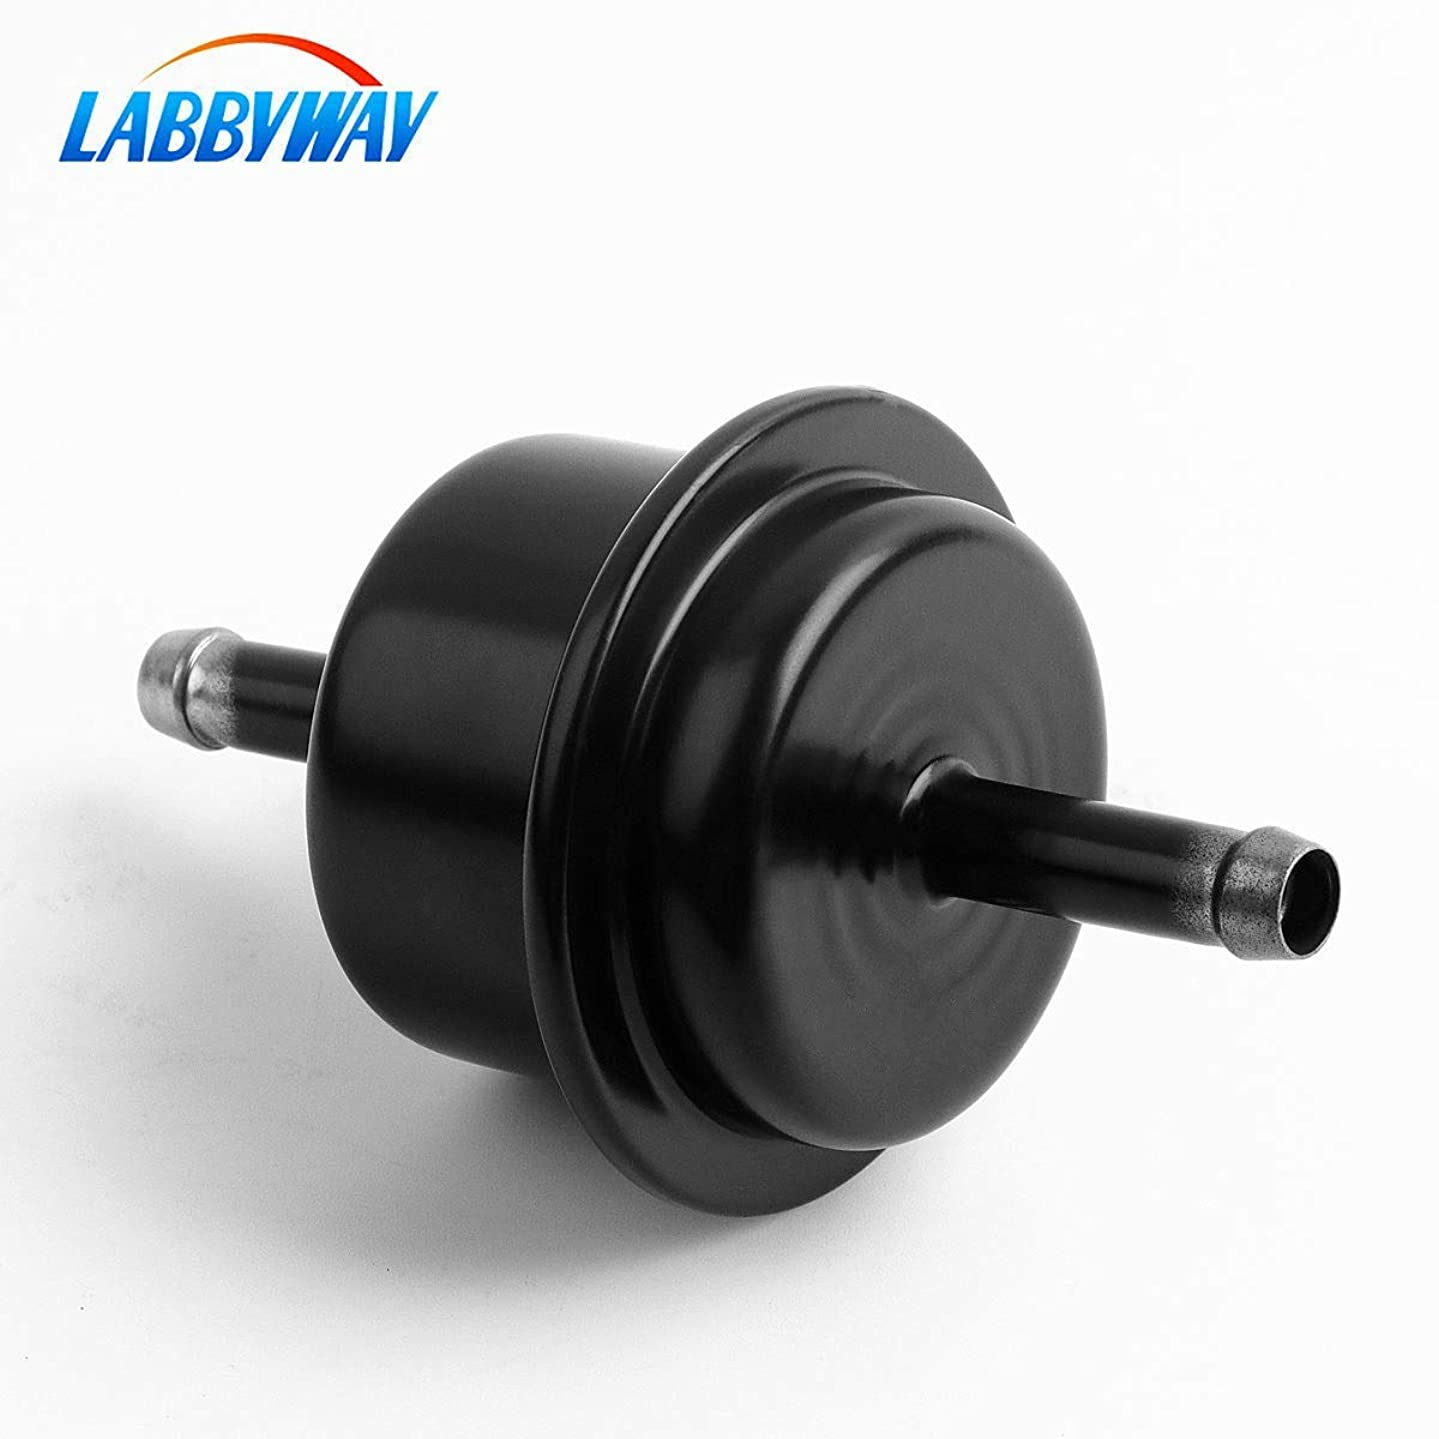 LABBYWAY 25430-PLR-003 Automatic Transmission Filter Used for Civic,Accord,CR-V,CR-Z,etc.